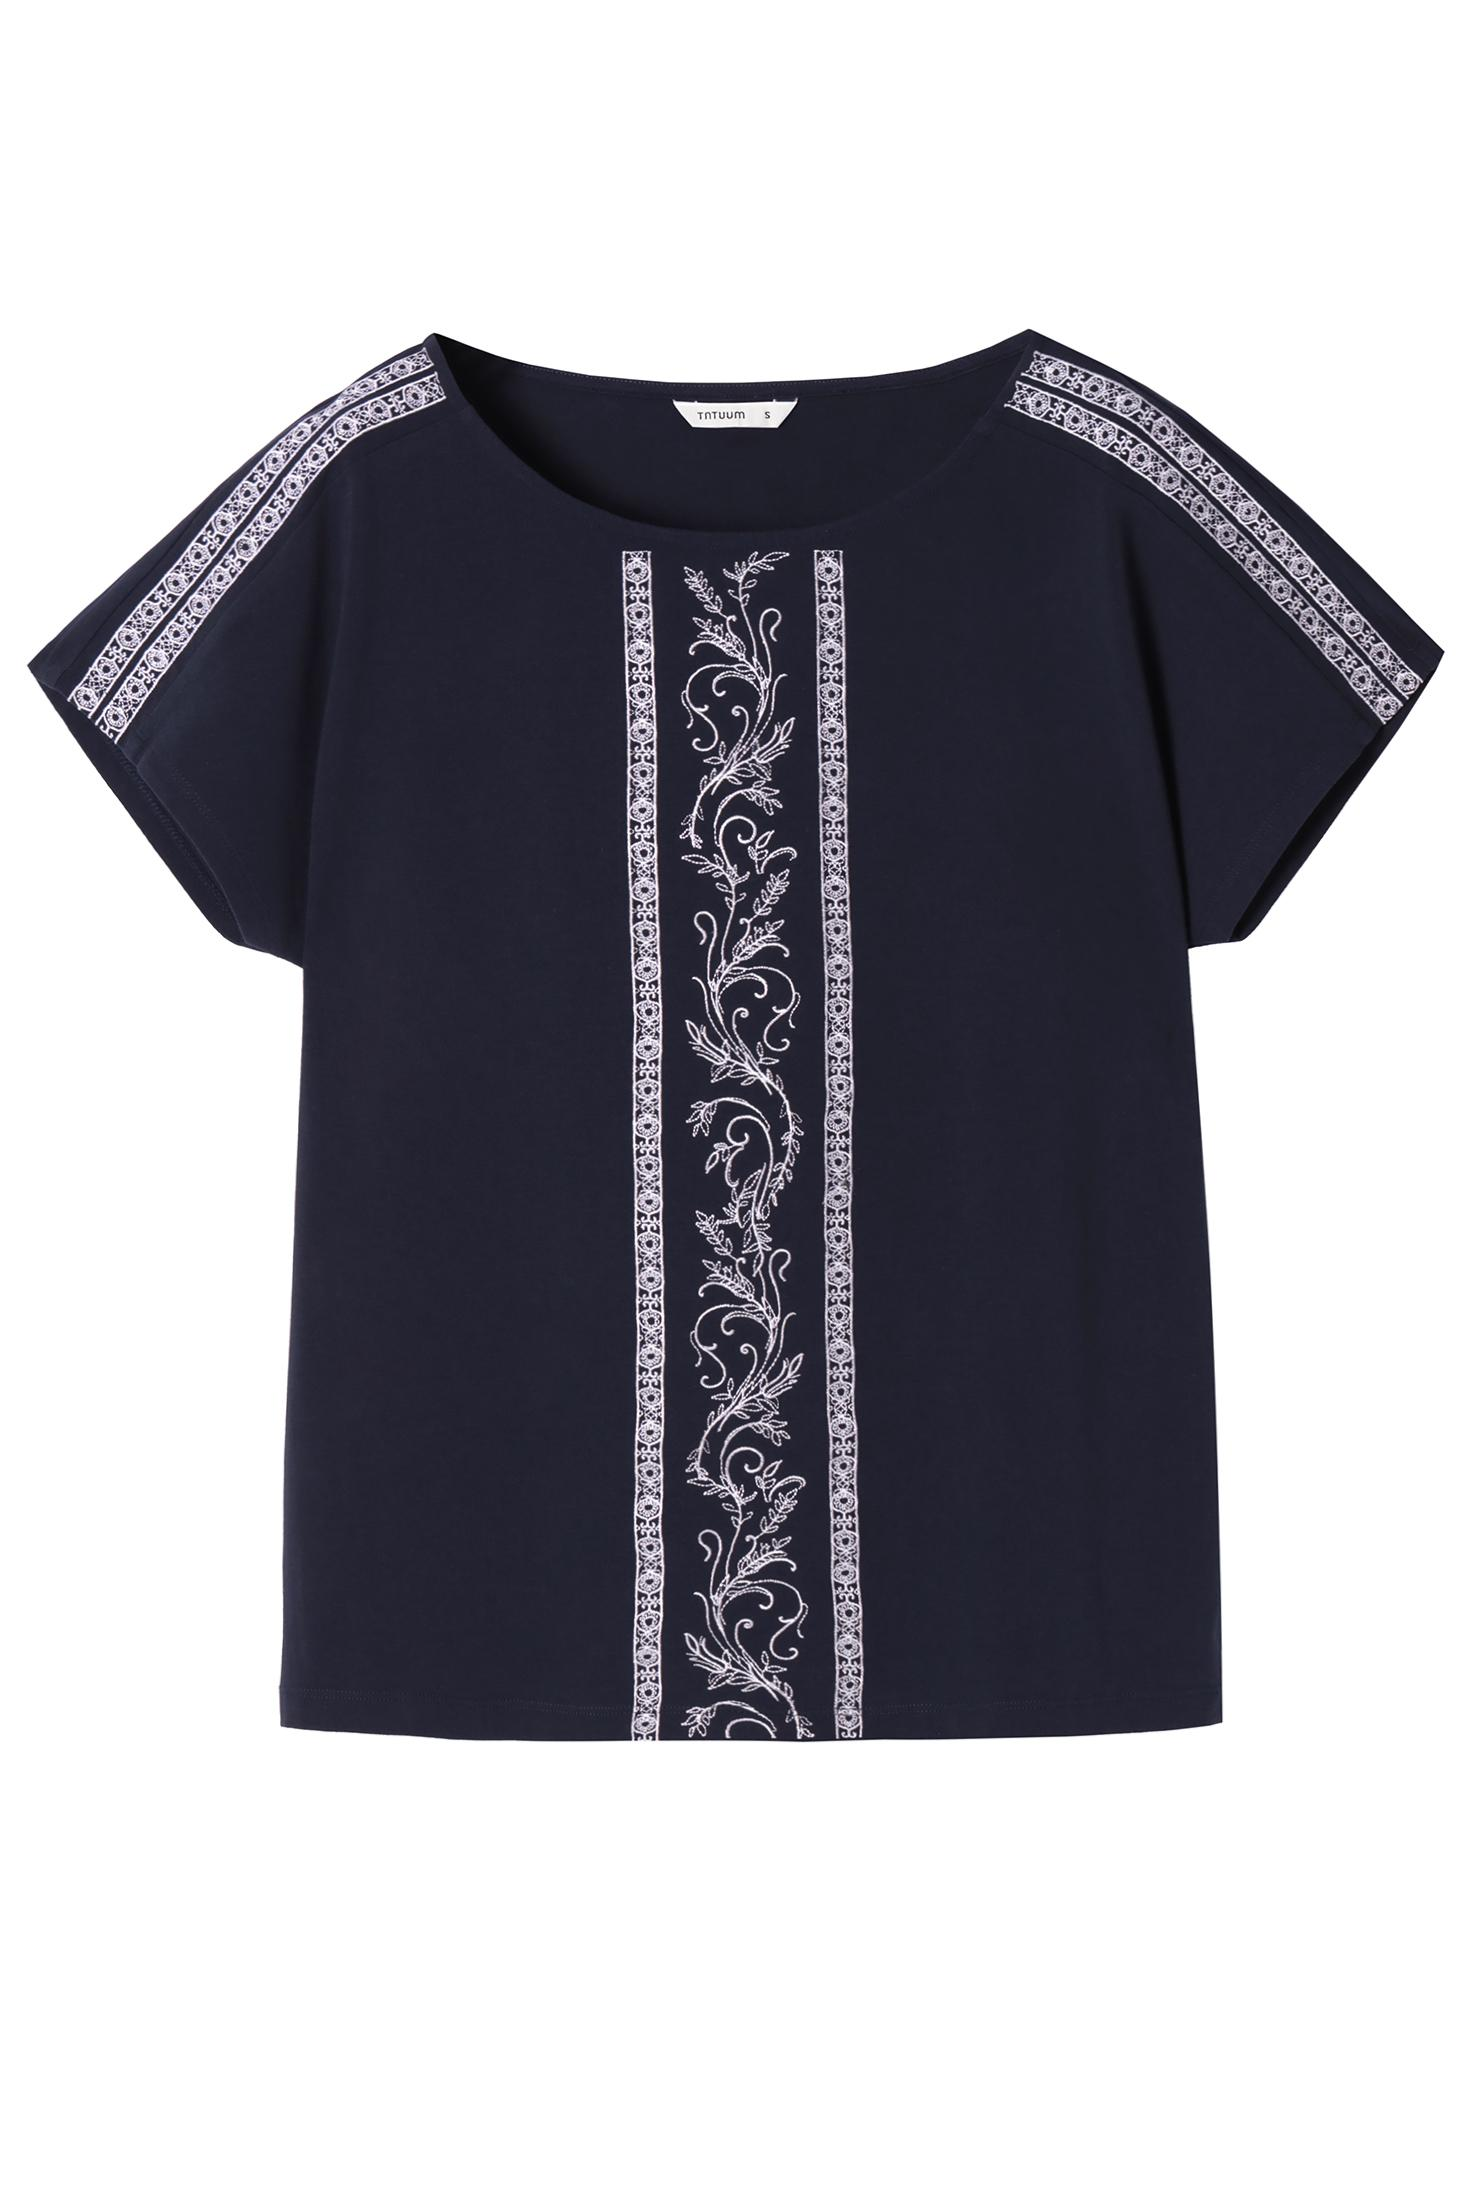 LADIES' EMBROIDERED BLOUSE EMAKIA